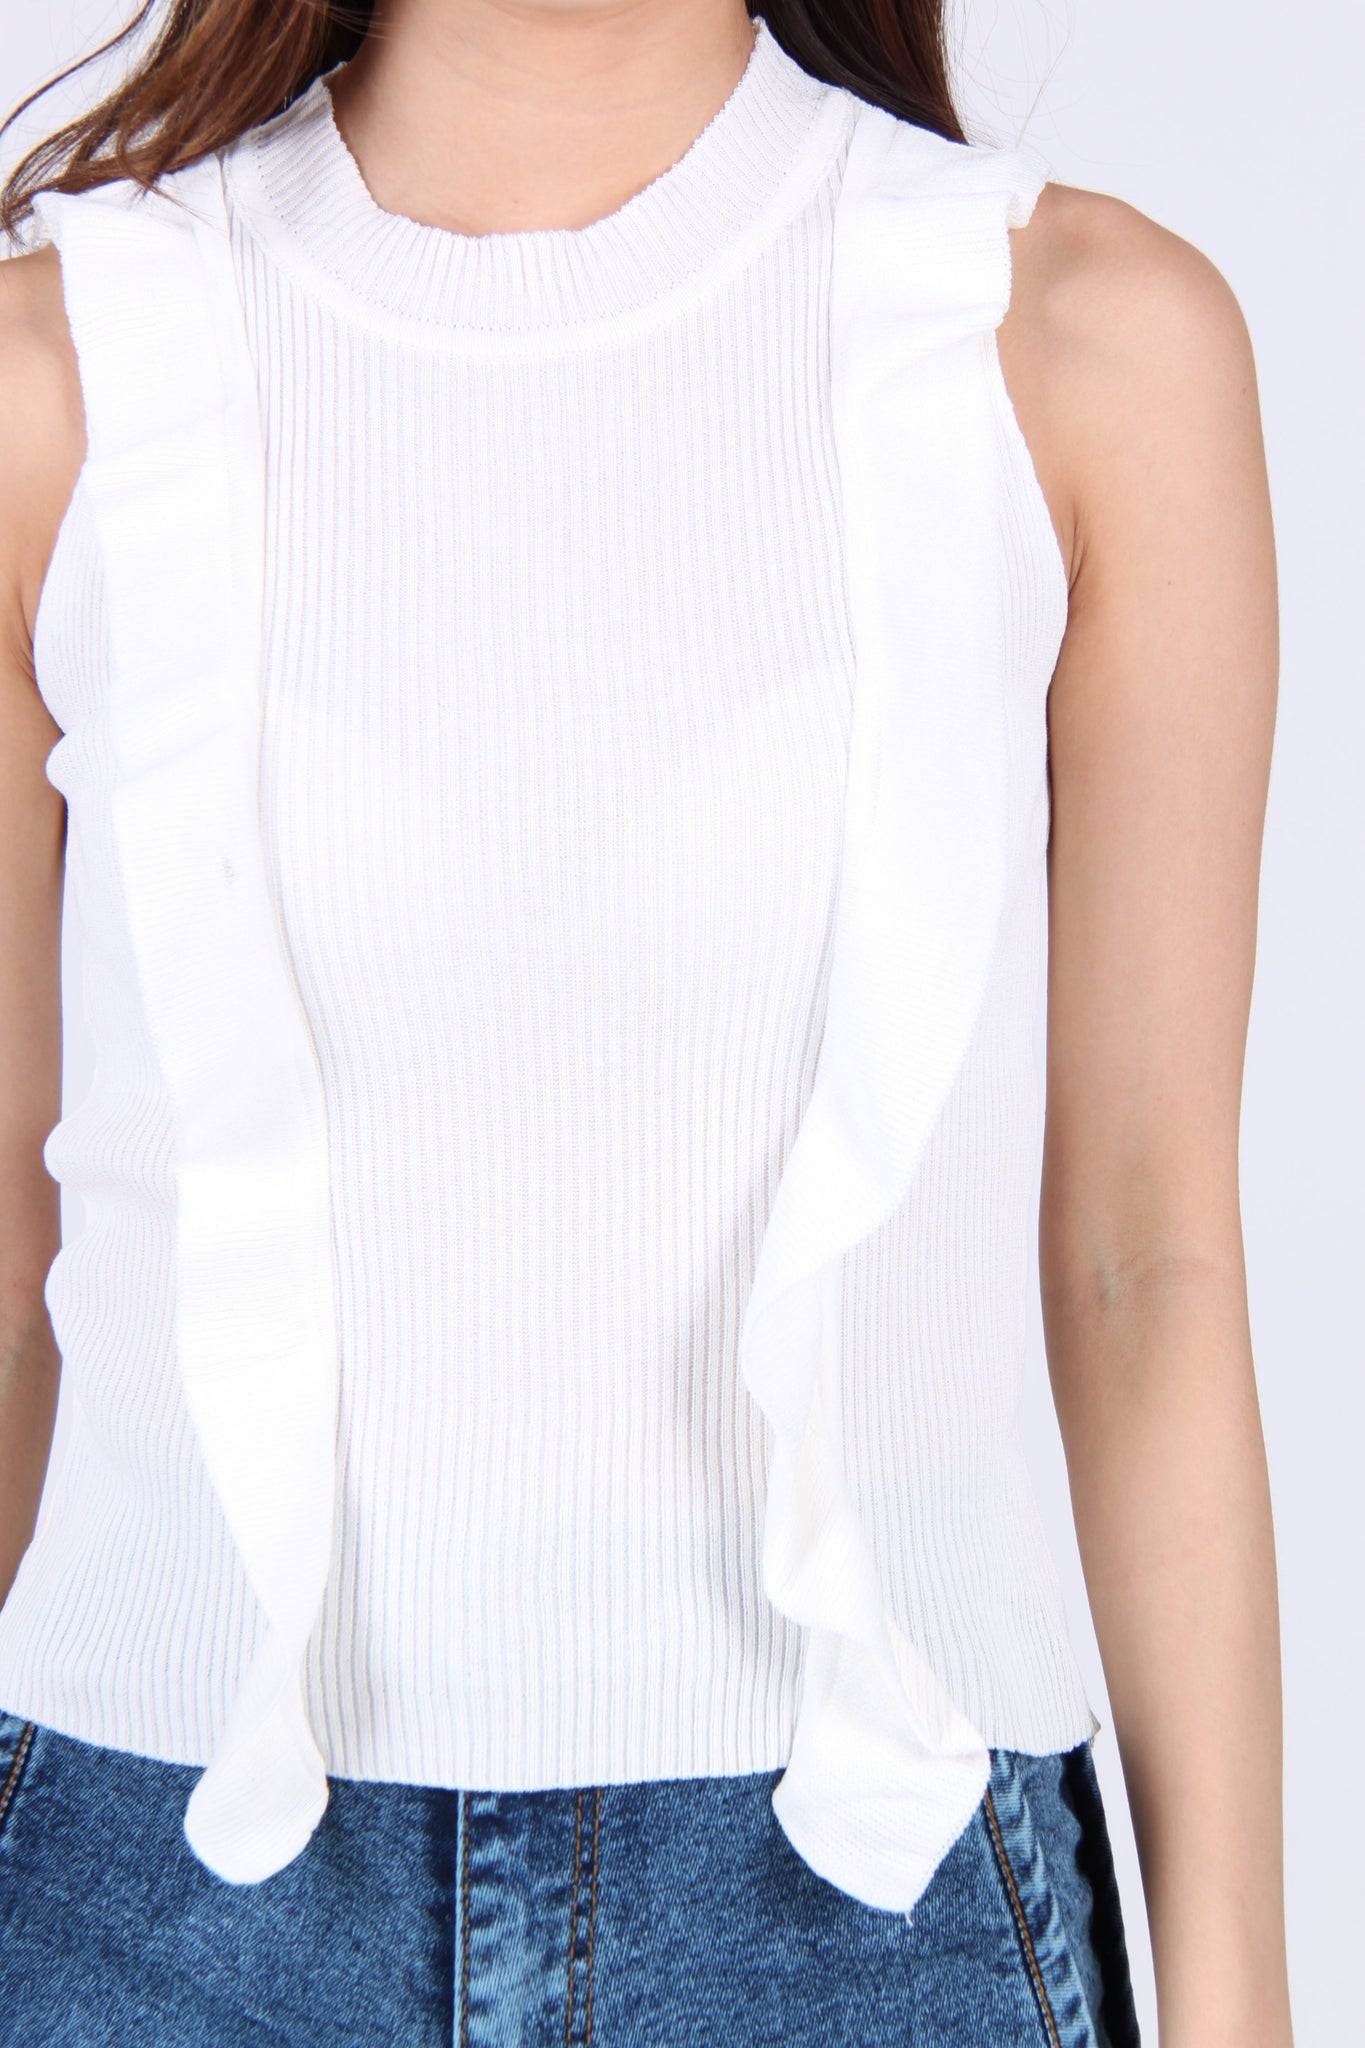 Front Ruffles Down Sleeveless Knit Top in White